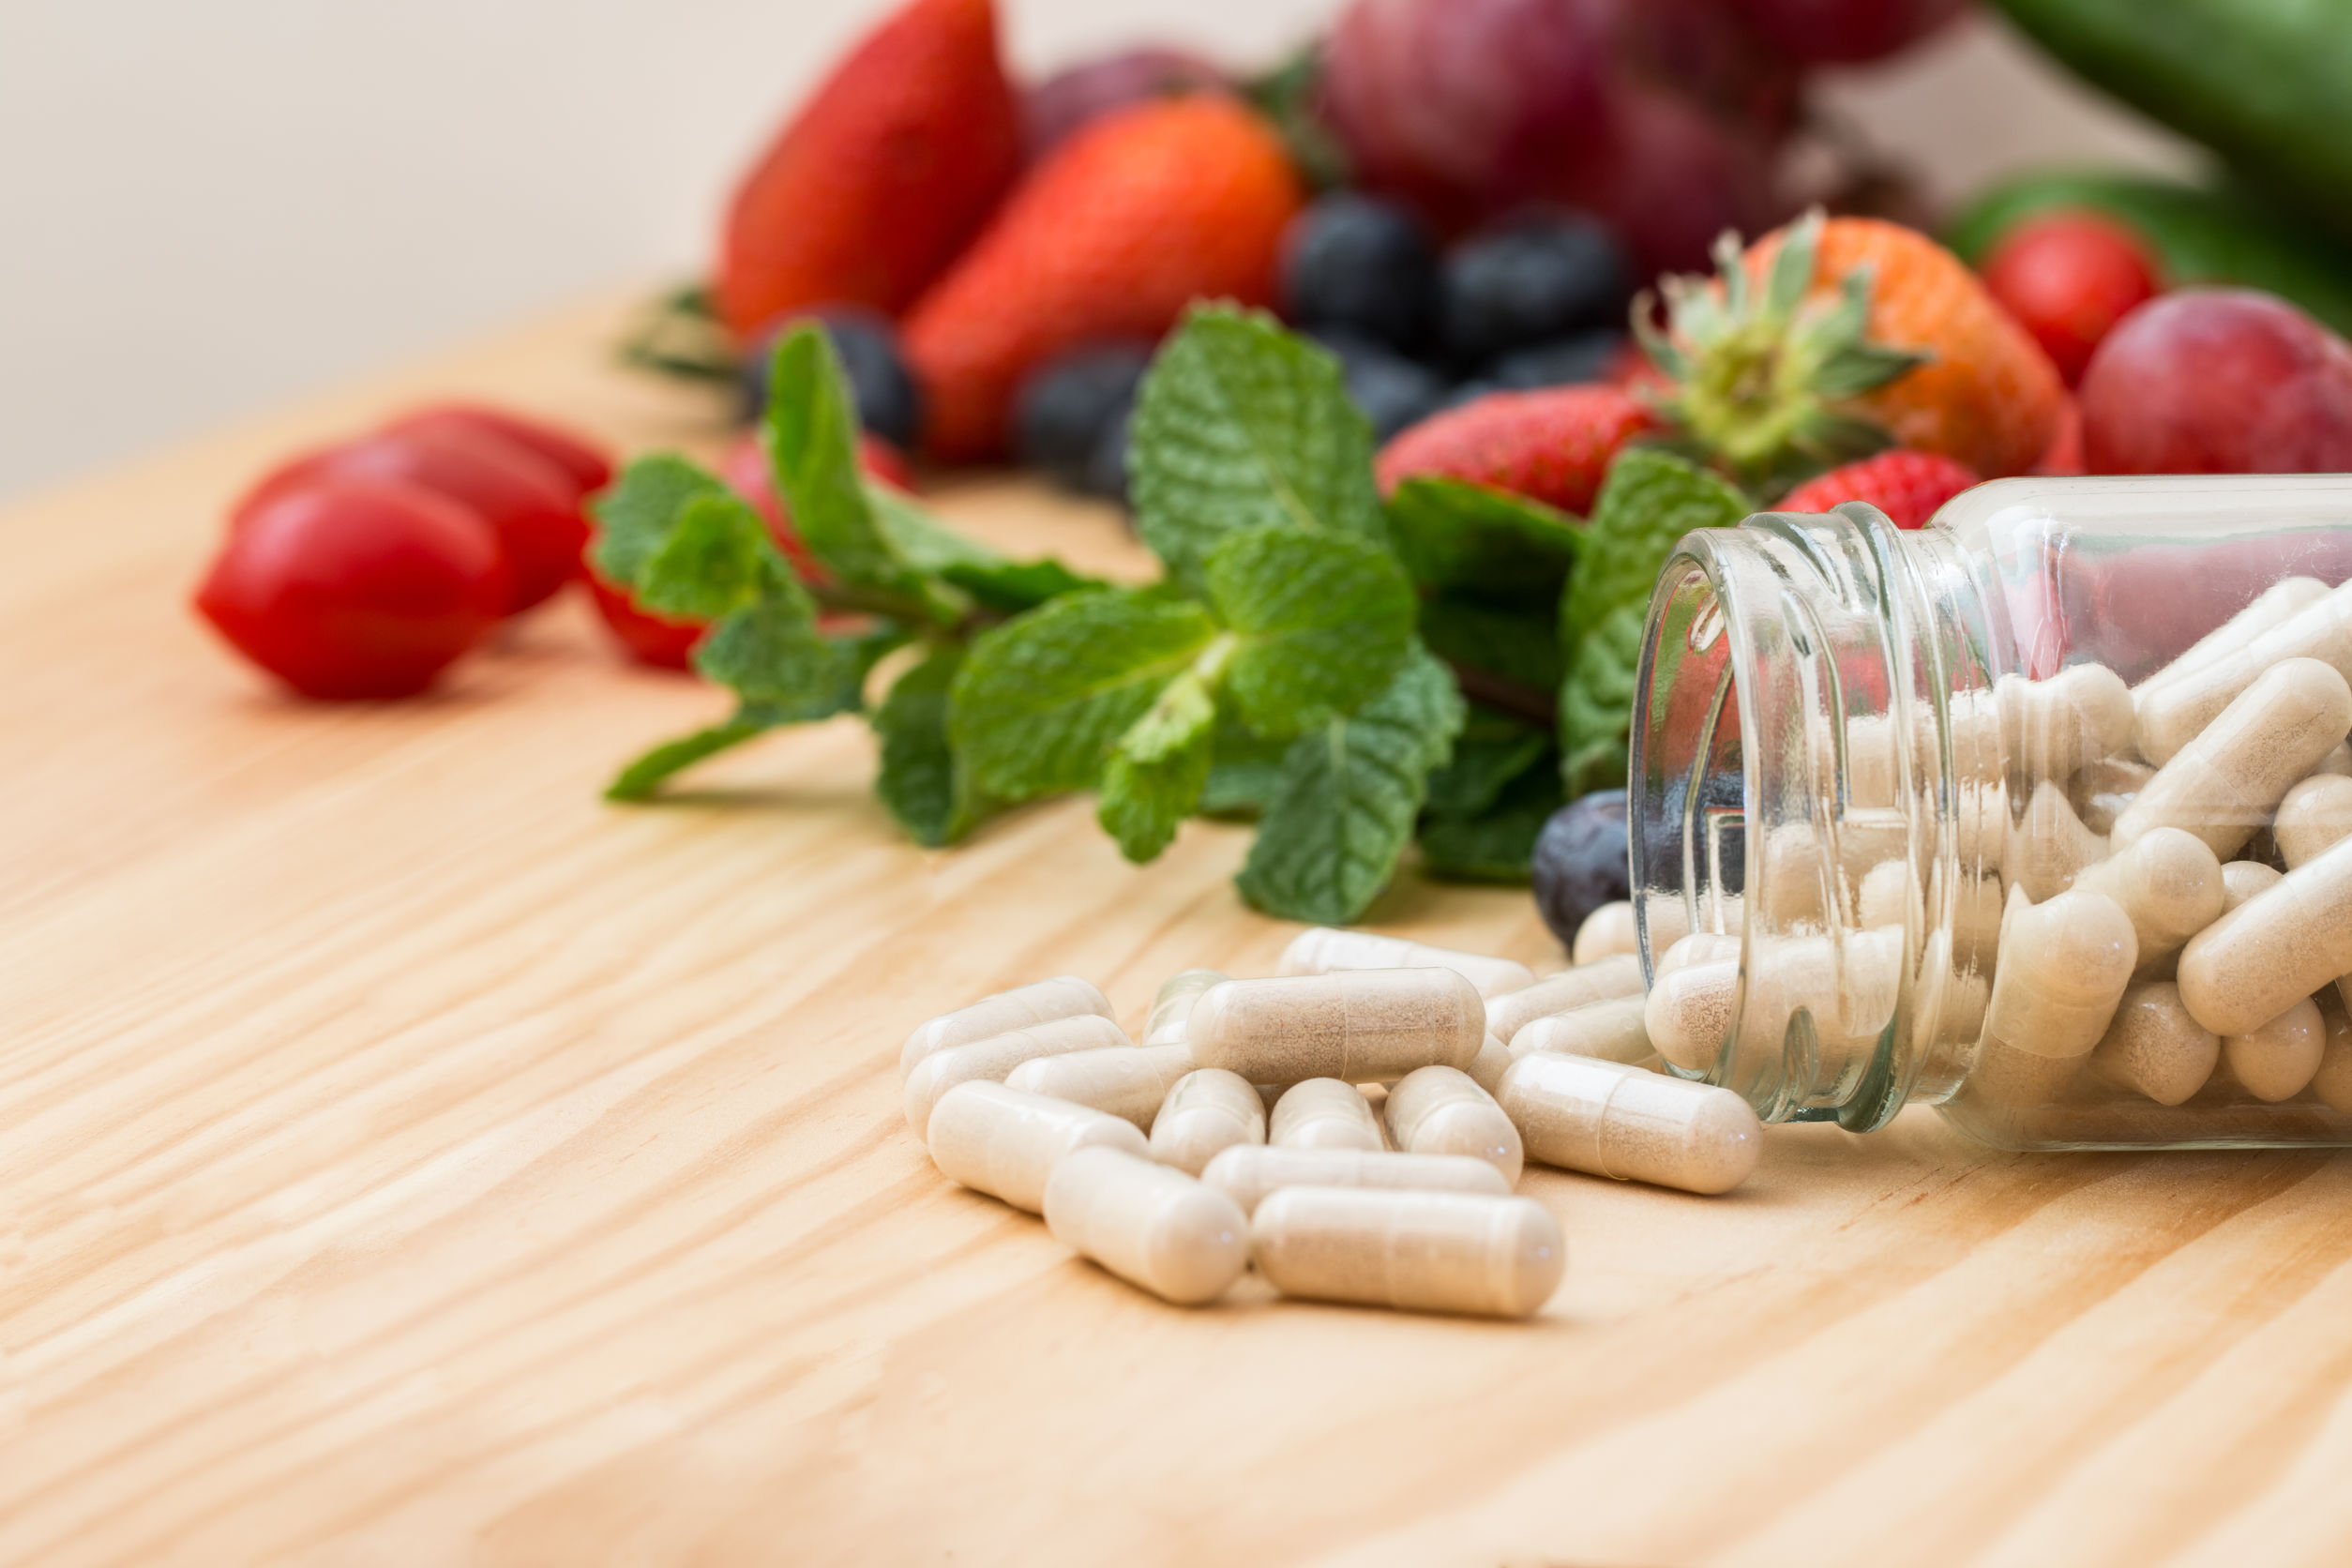 Best Multivitamins 2021: Shopping Guide & Review